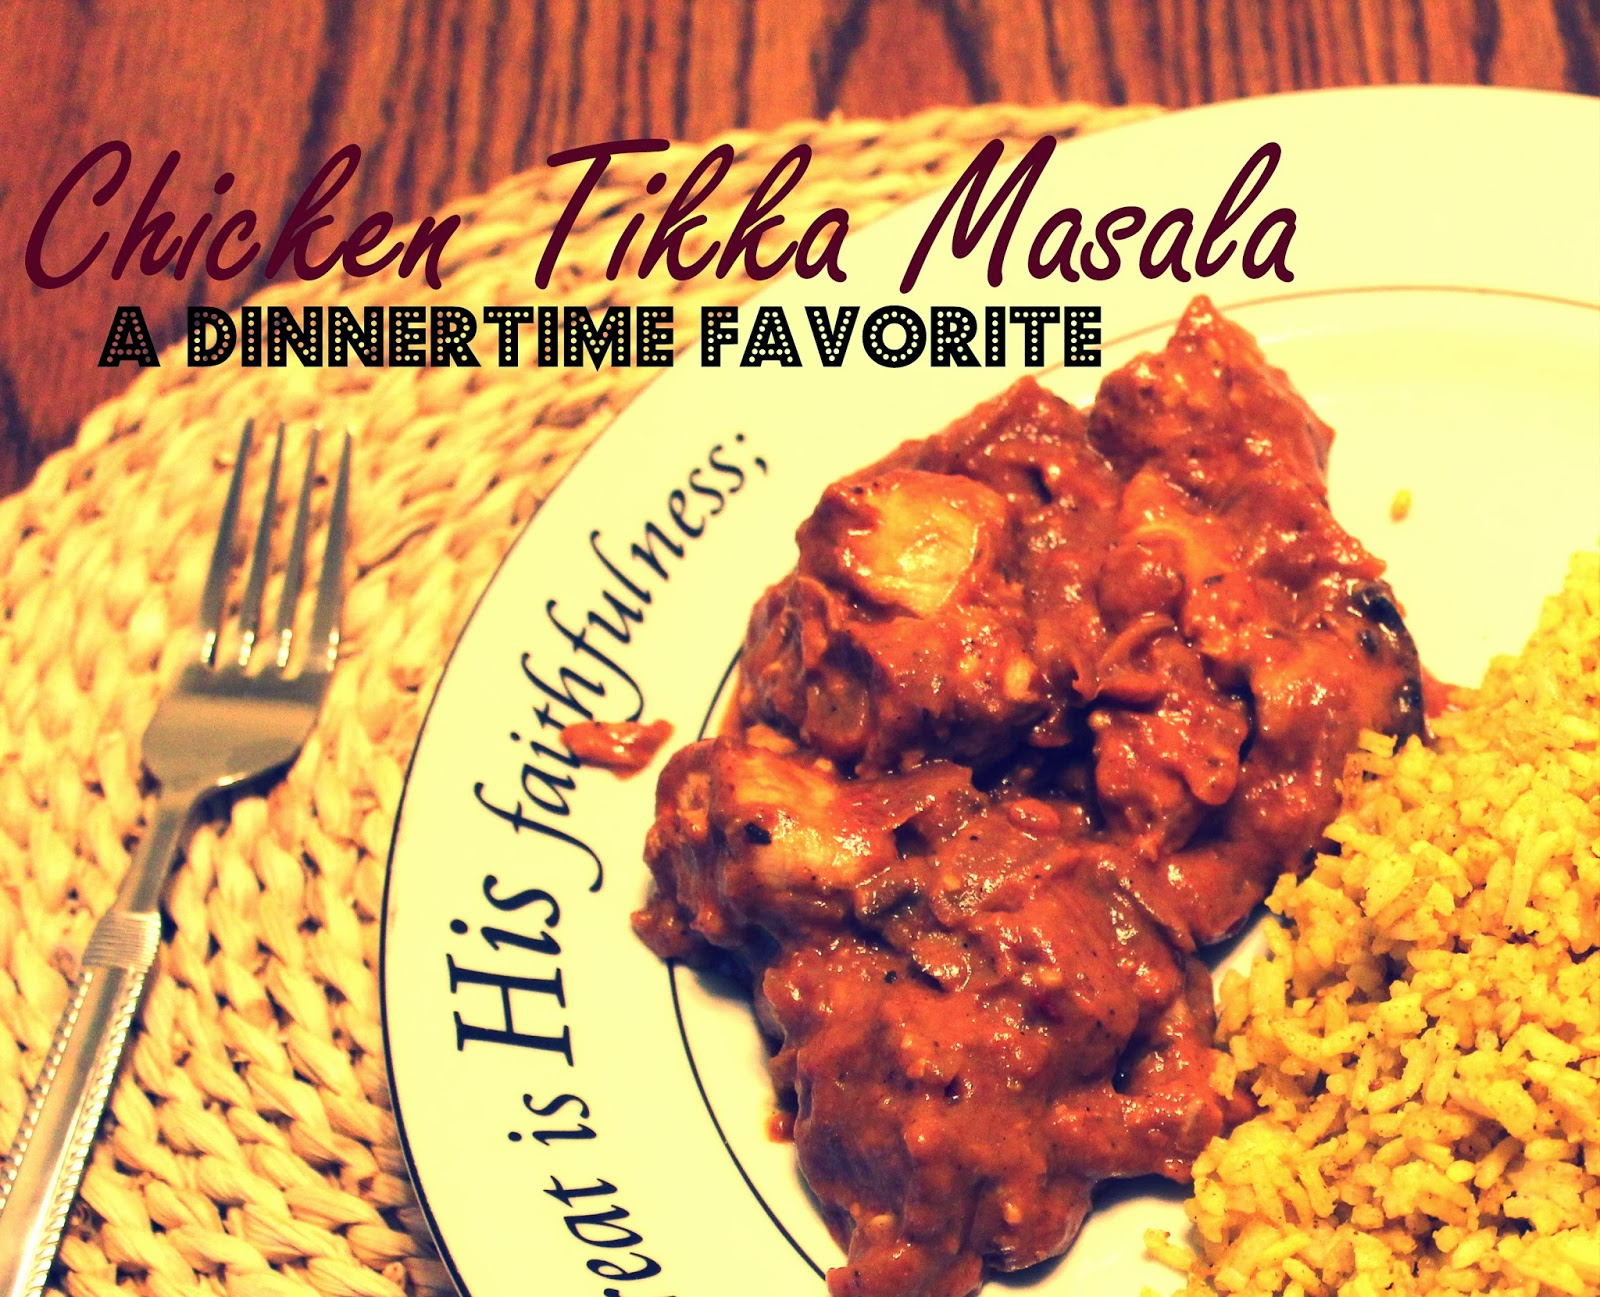 Chicken Tikka Masala using Garam Masala and other spices with curry rice and tortillas